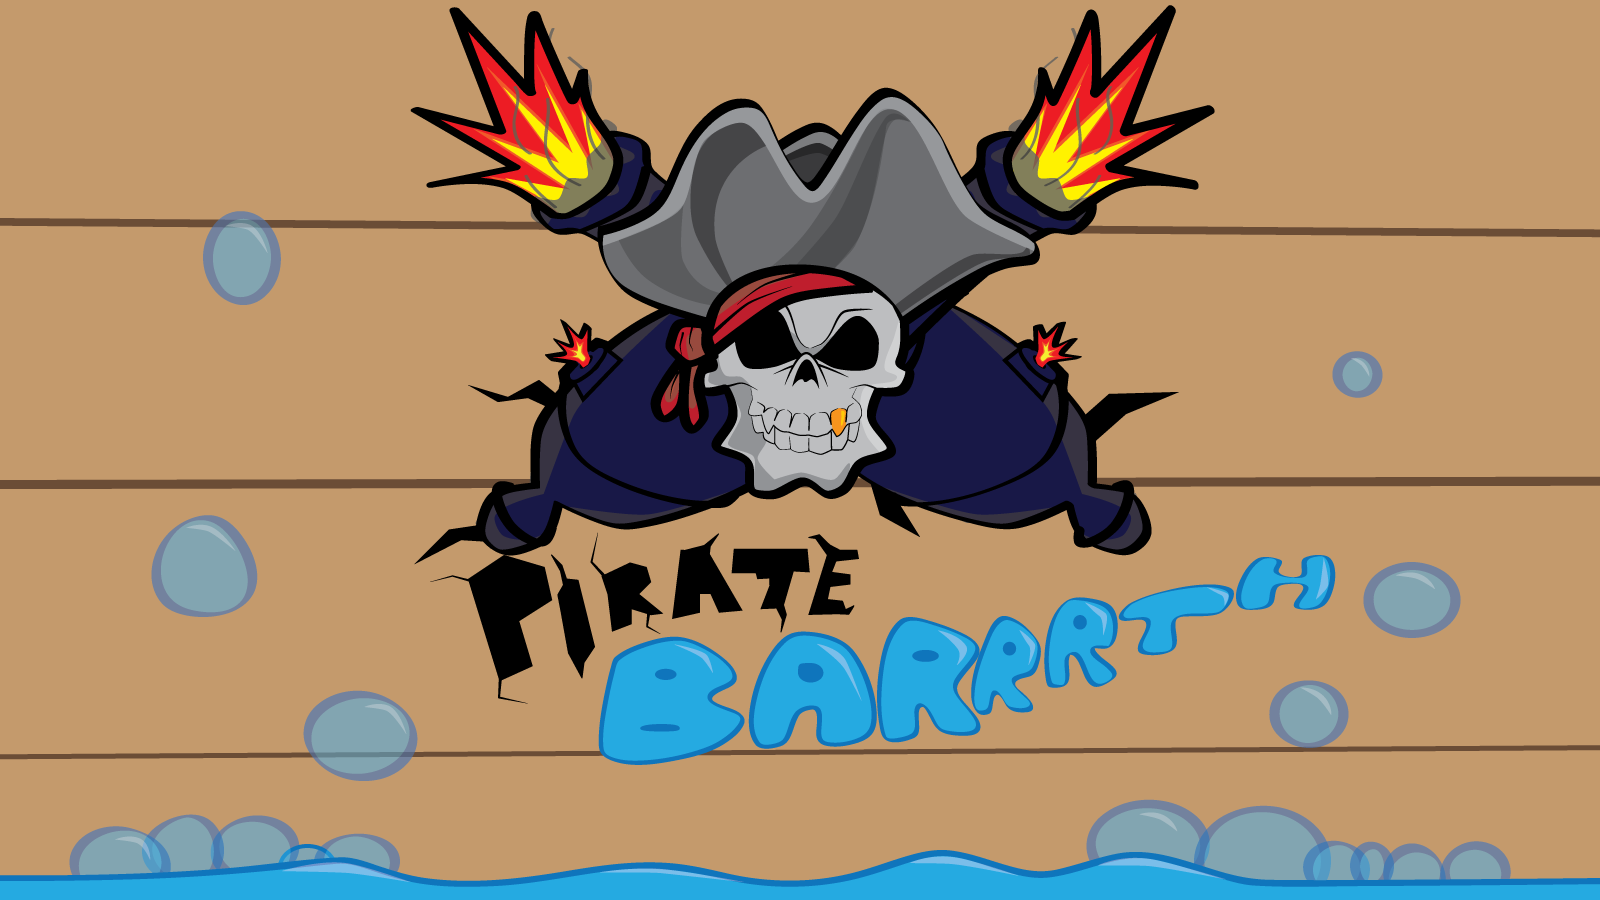 Pirate Barrrth